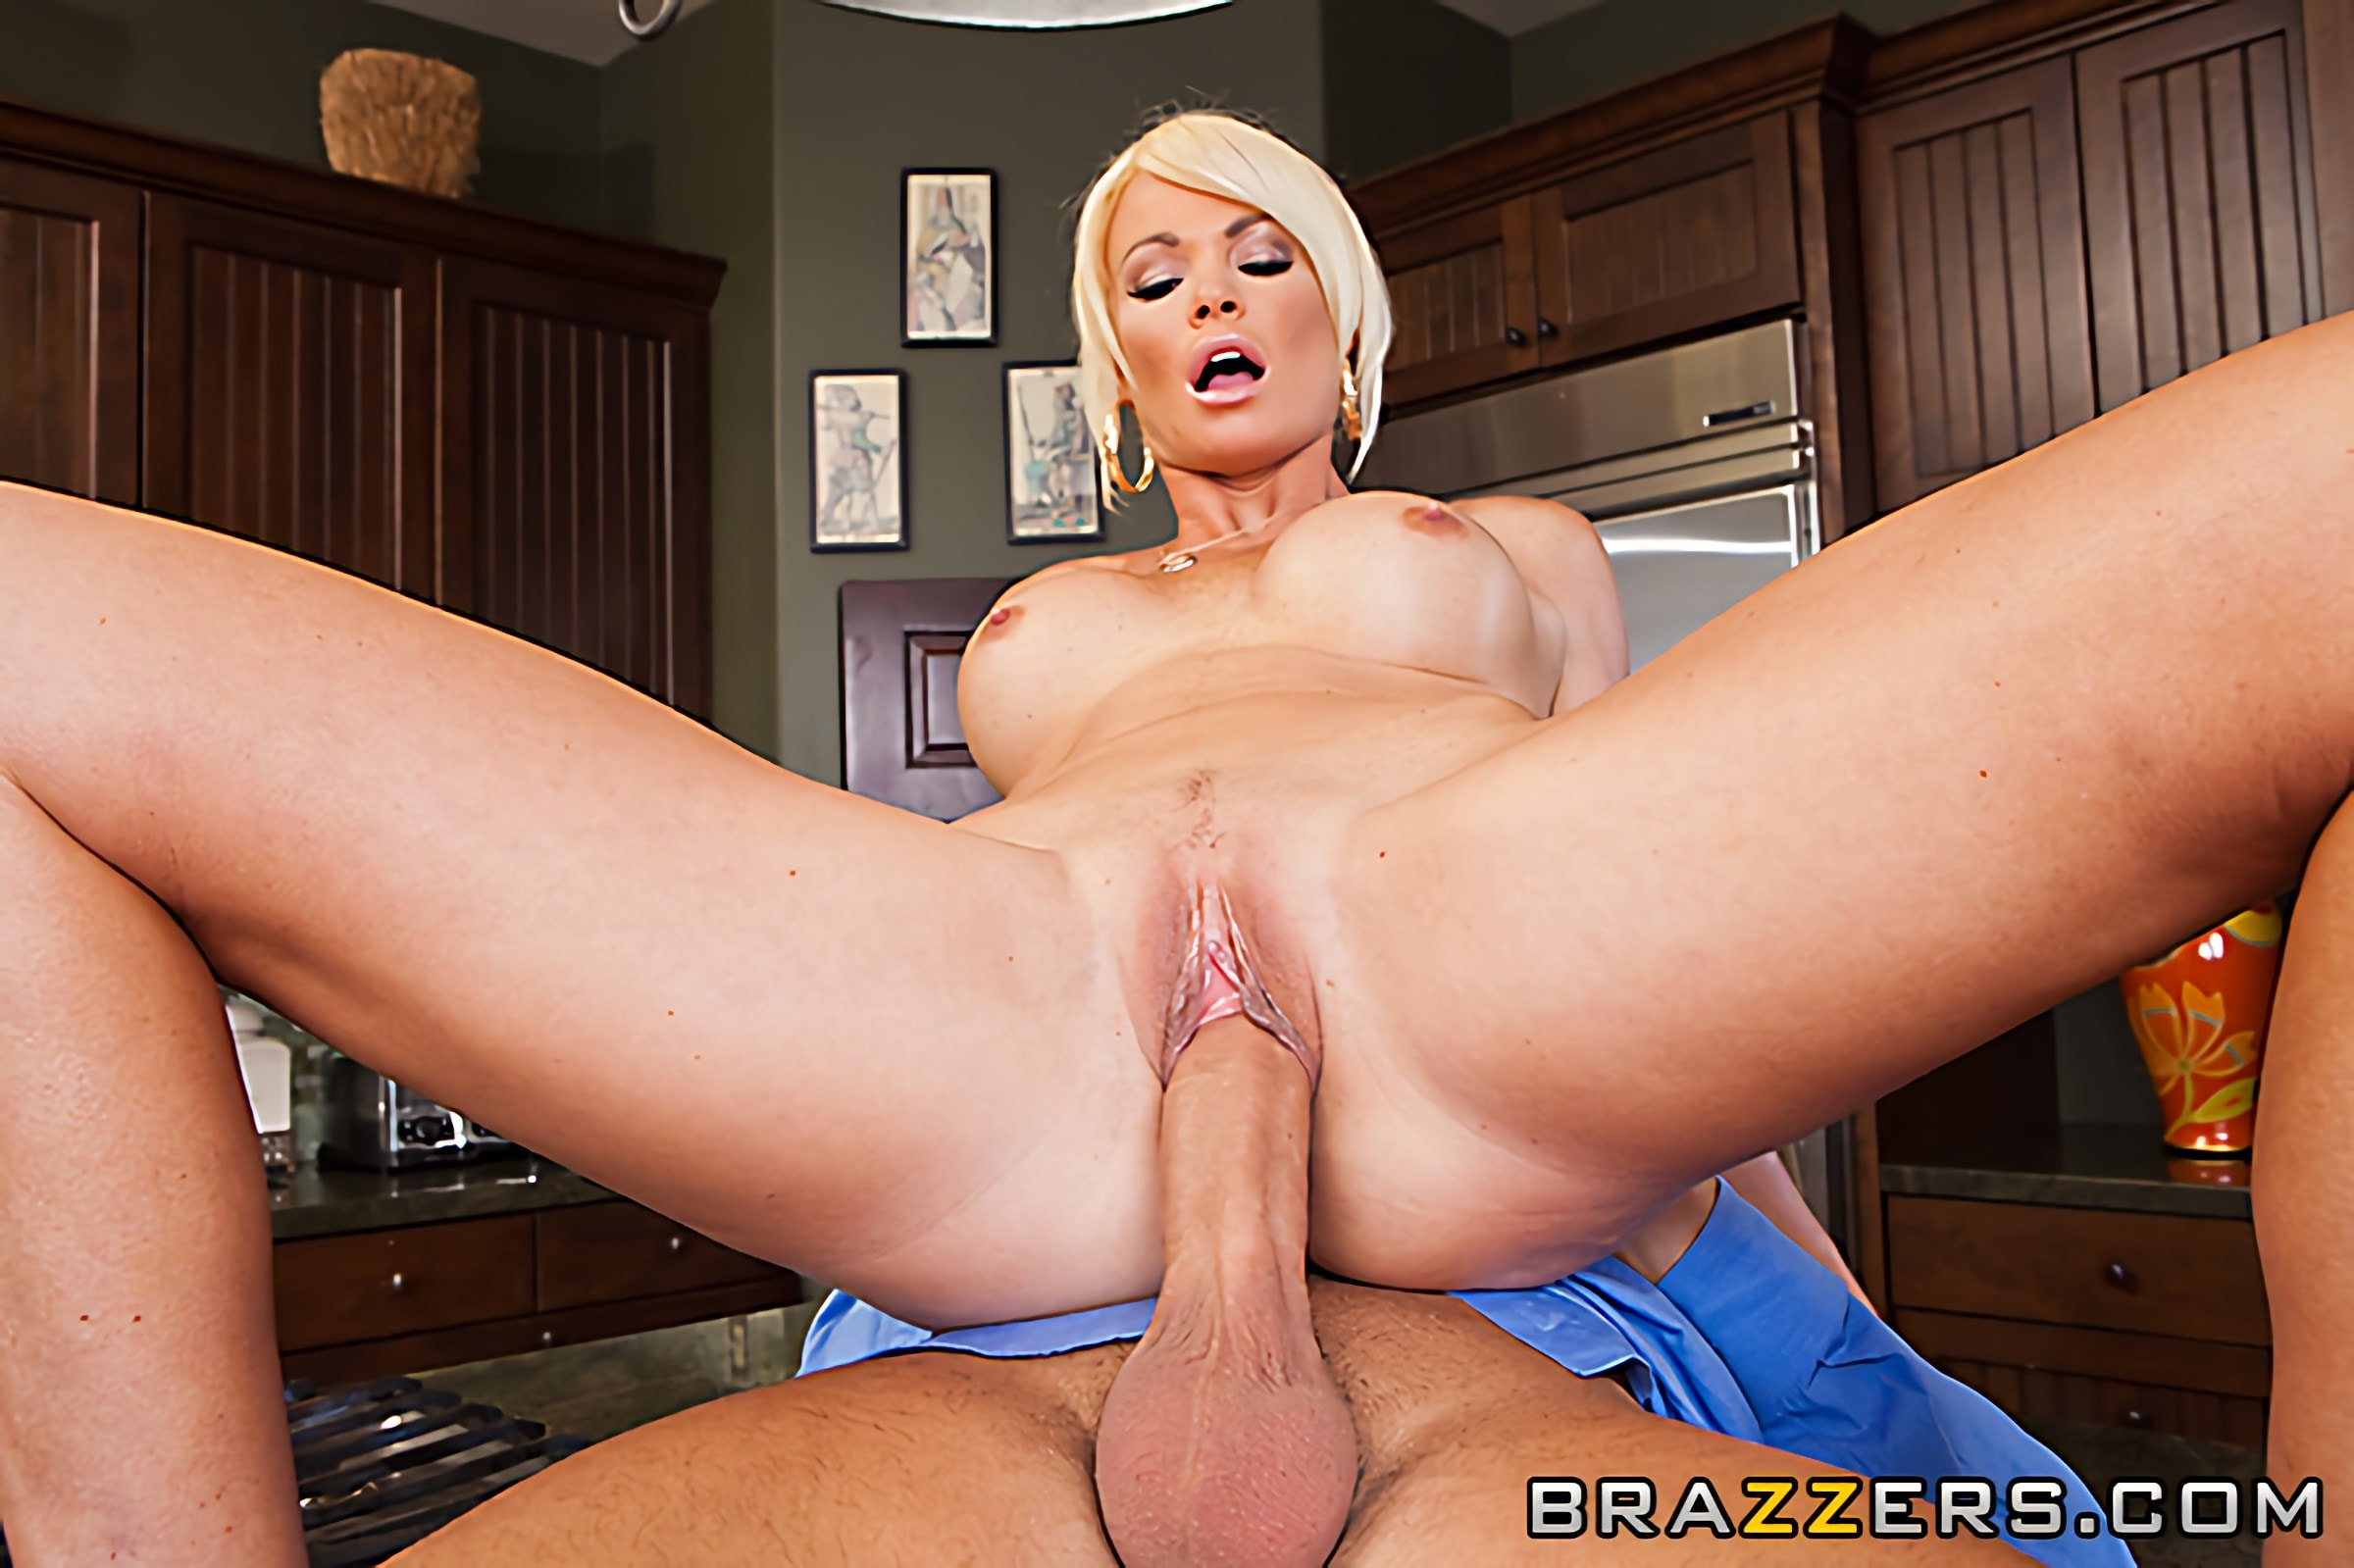 Busty pornstar rhylee richards lets the guy lick and penetrate her moist pussy